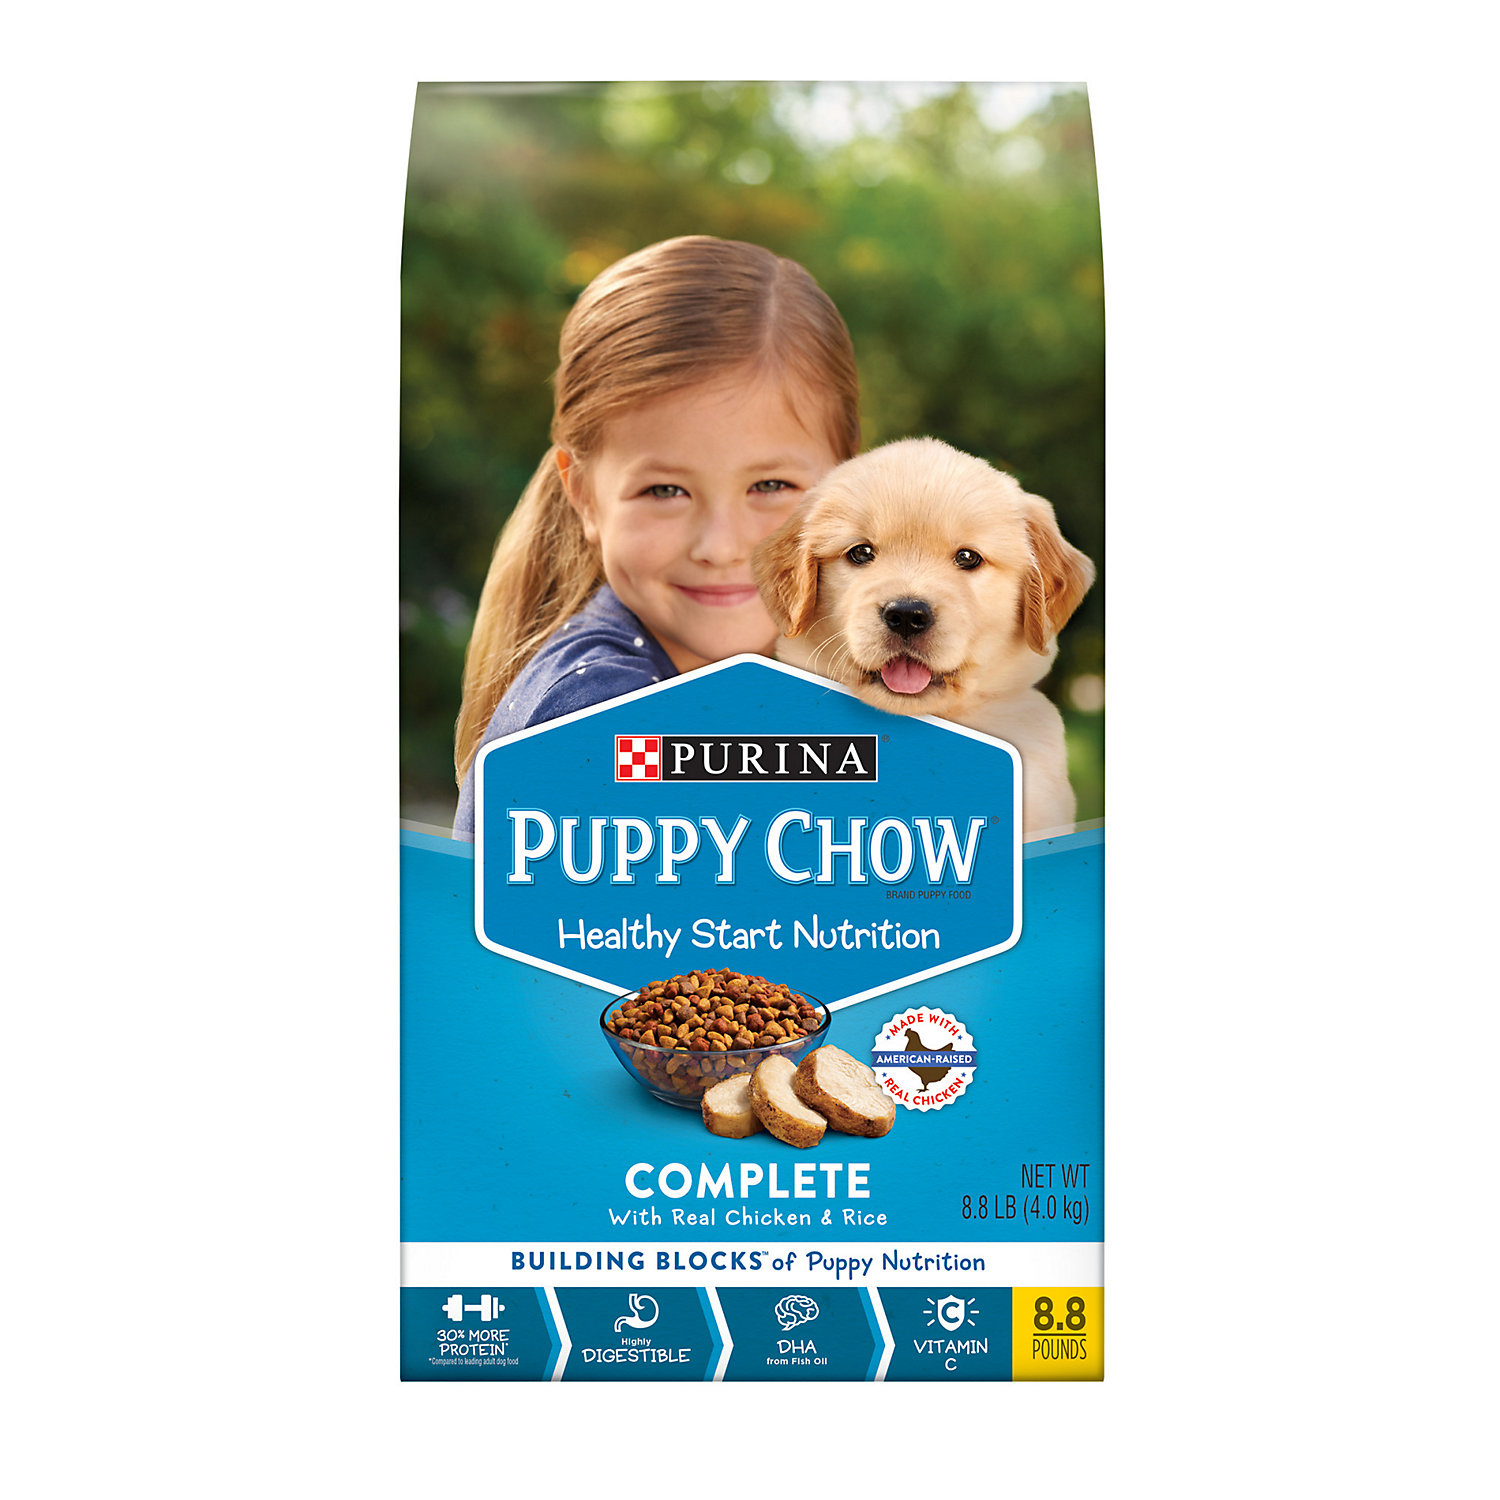 Purina Puppy Chow Complete Nutrition Formula